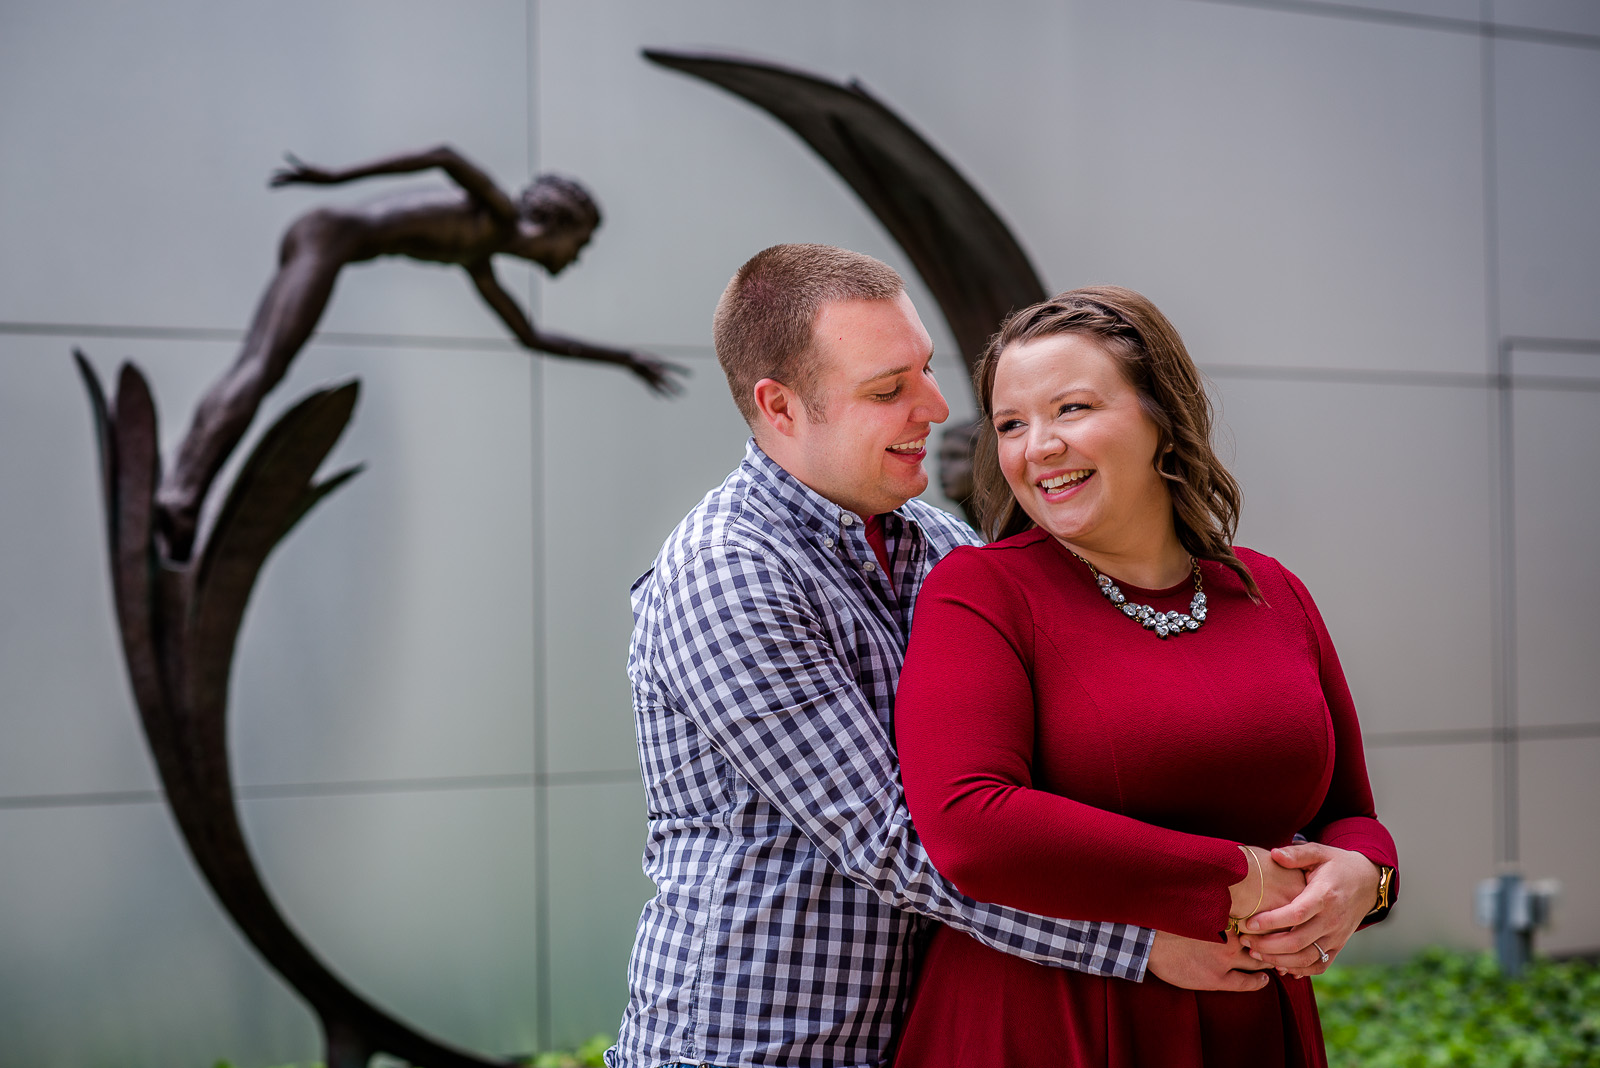 Eric_and_Christy_Photography_Blog_Stacey_Geoff_Engagement-19